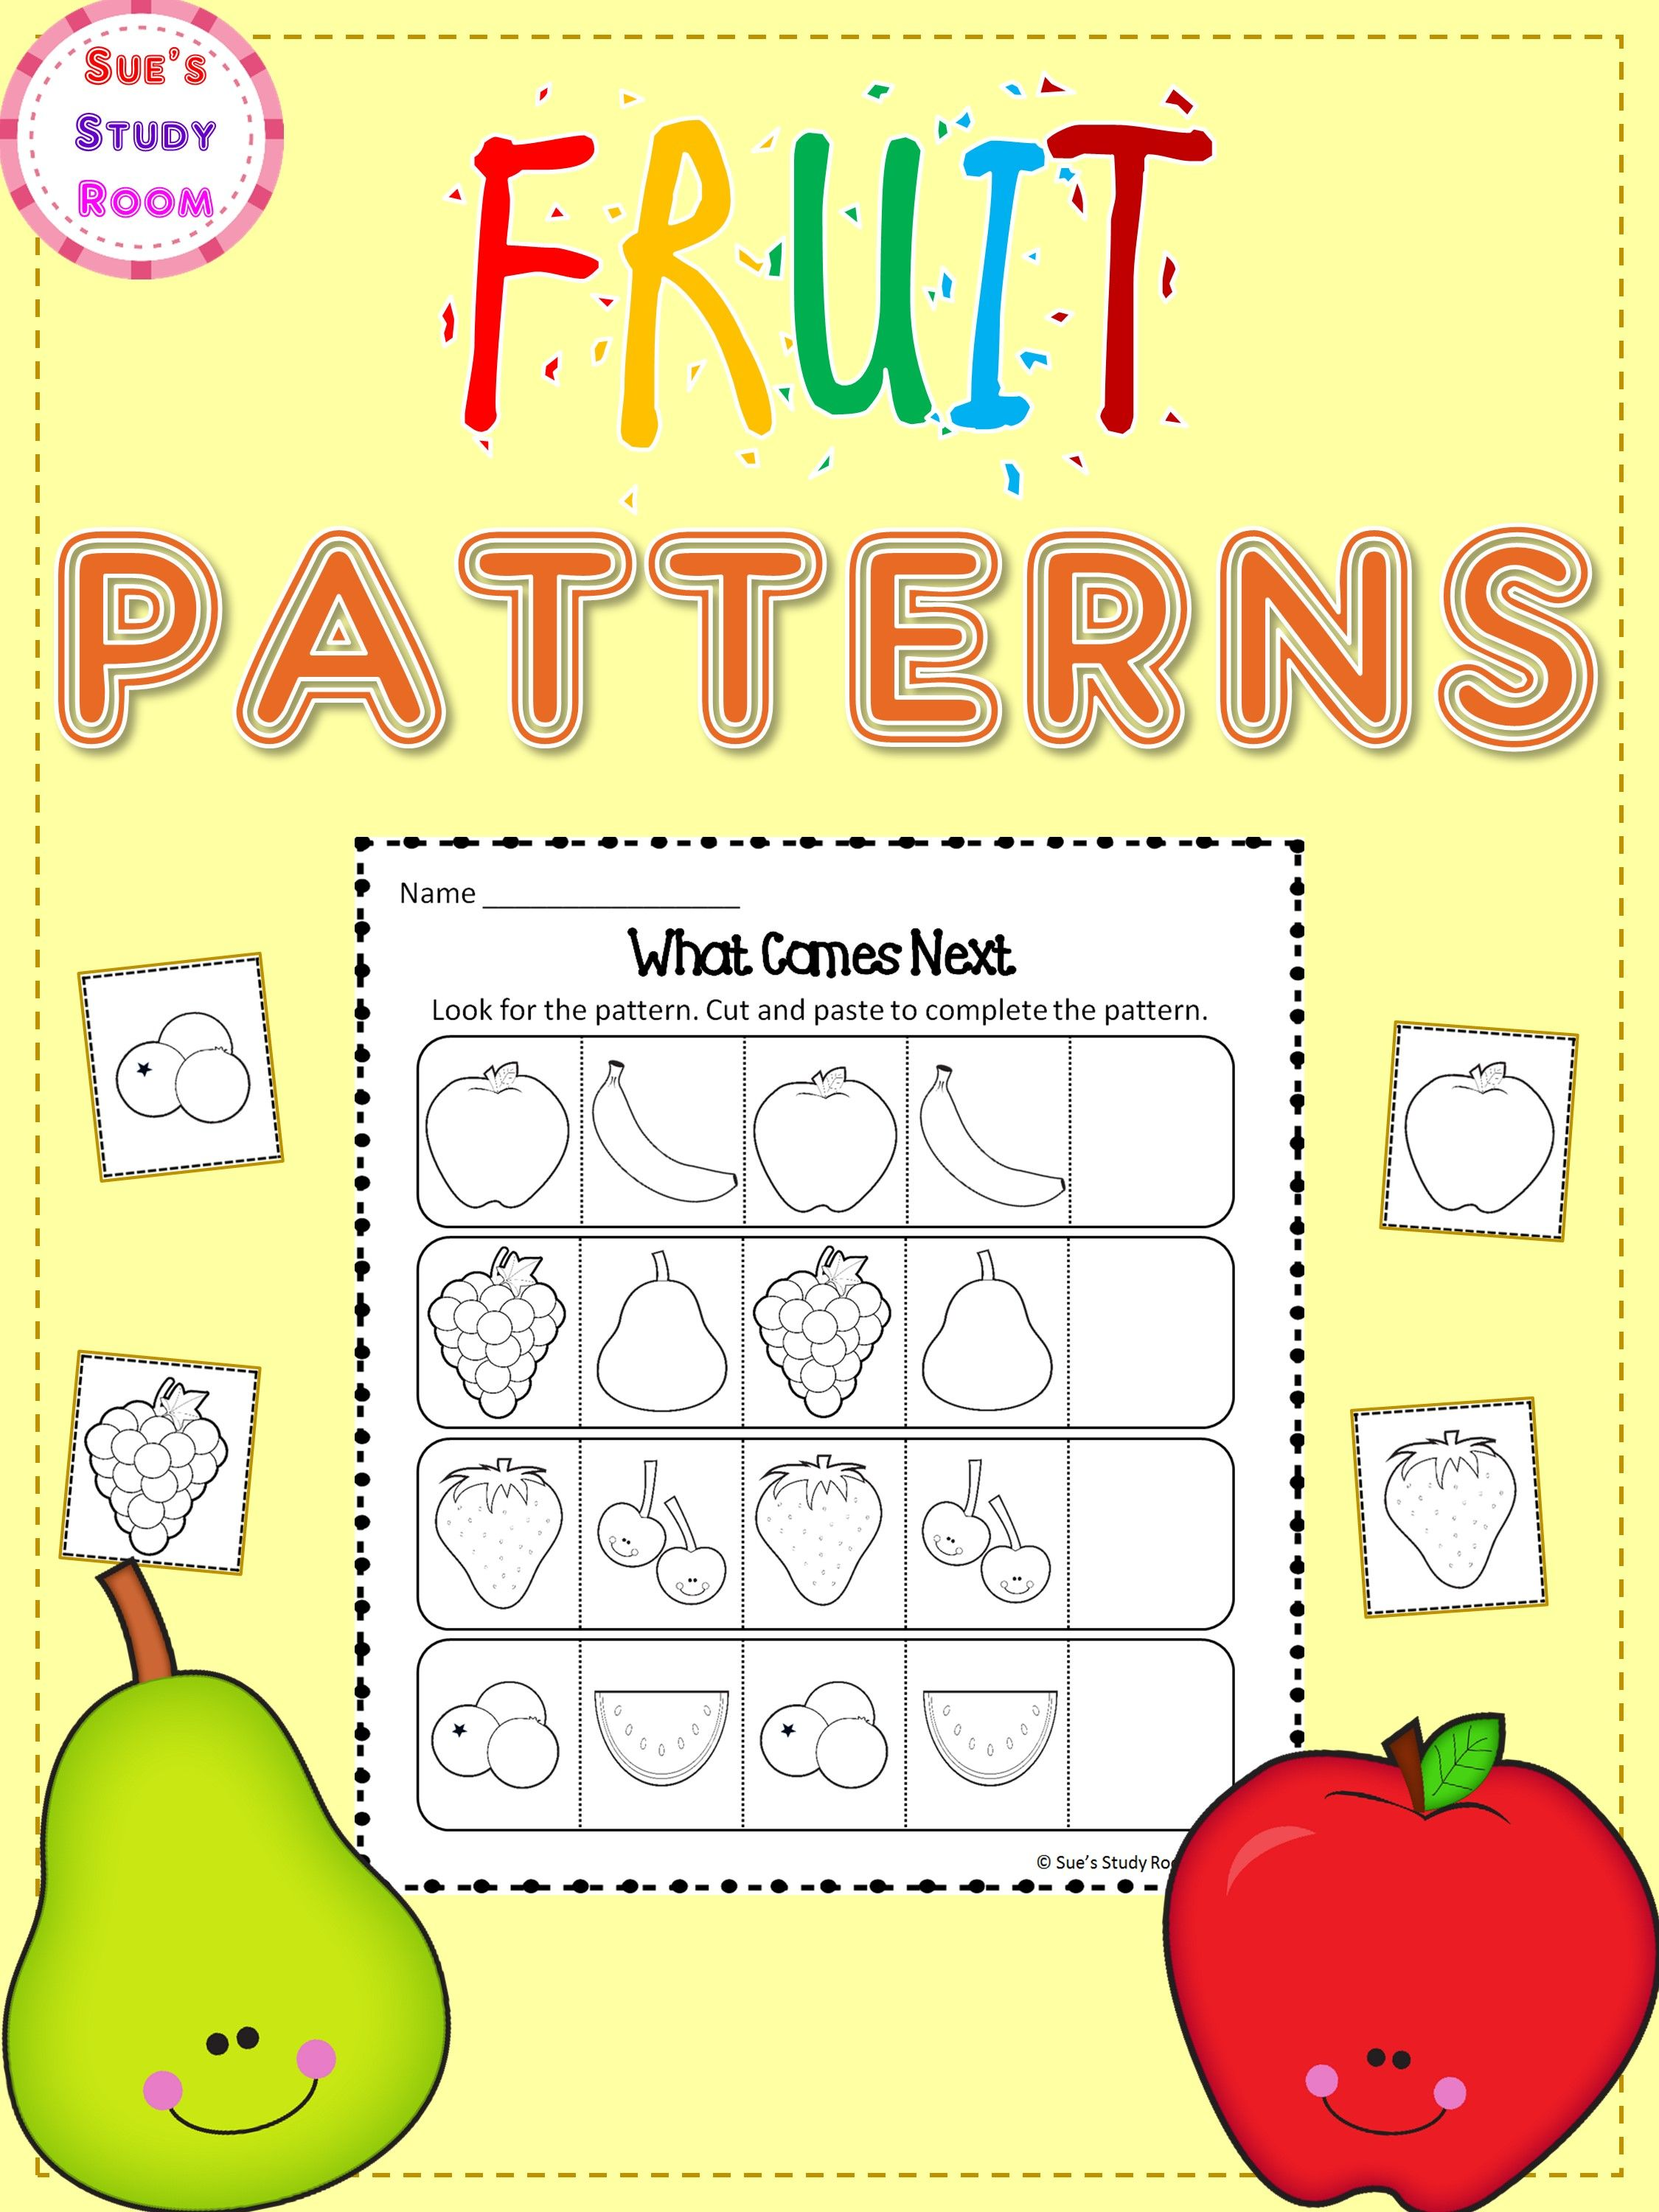 Sandwich Preschool Worksheet